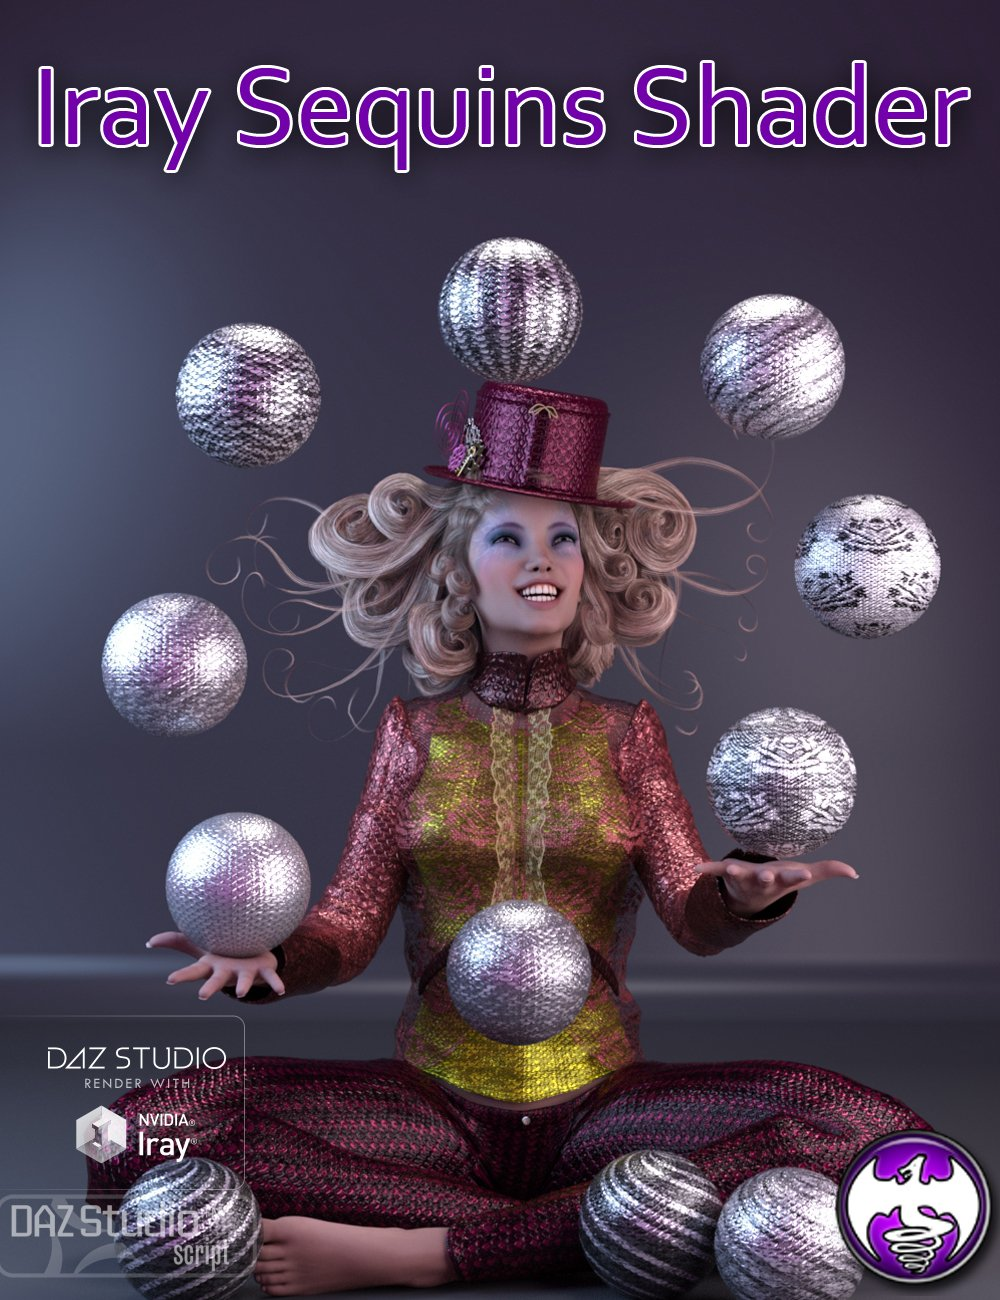 Iray Sequins Shader by: DraagonStorm, 3D Models by Daz 3D